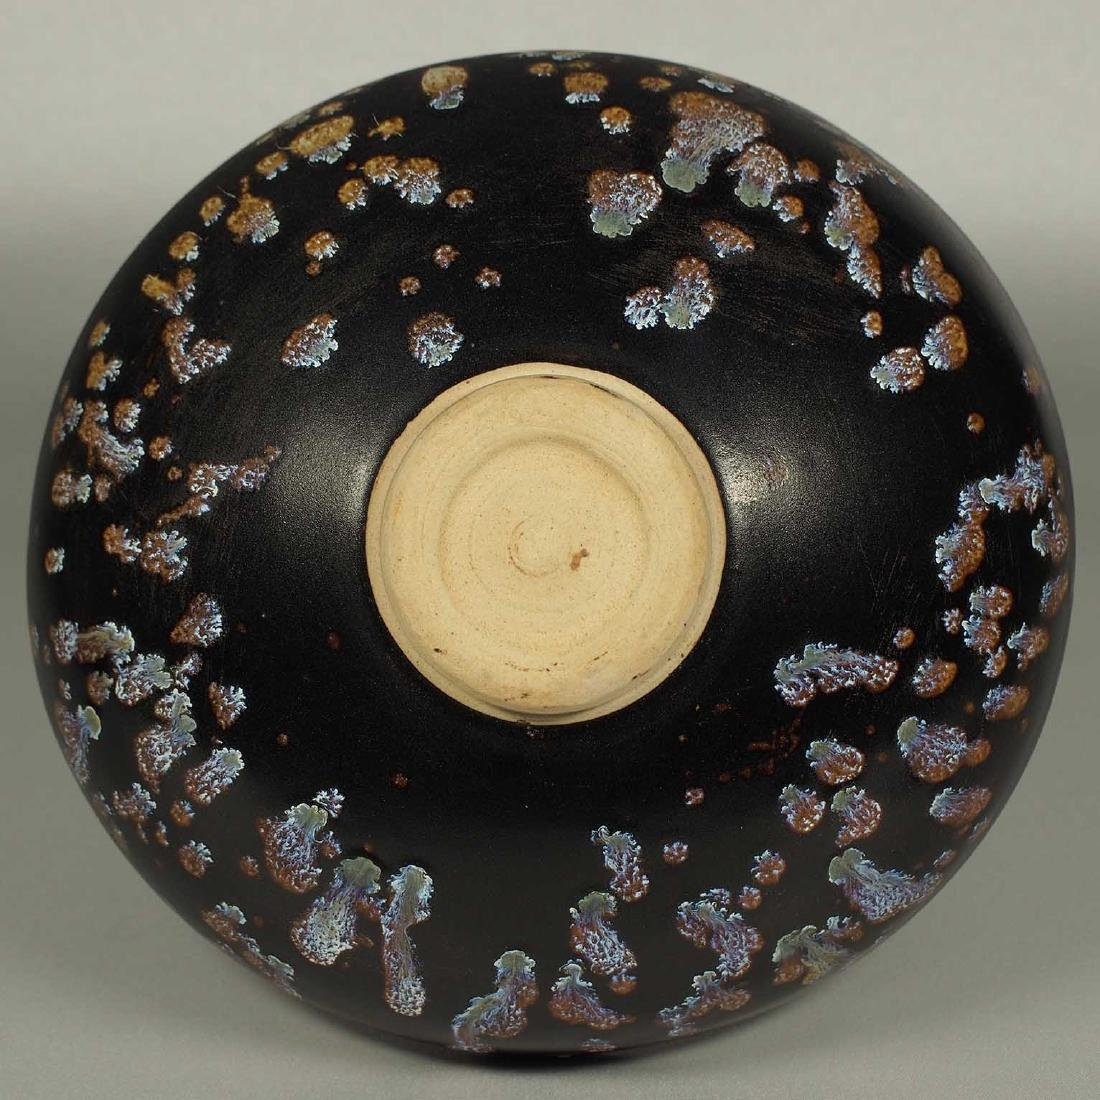 Jizhou Bowl with Paper-Cut Design, Song Dynasty - 8